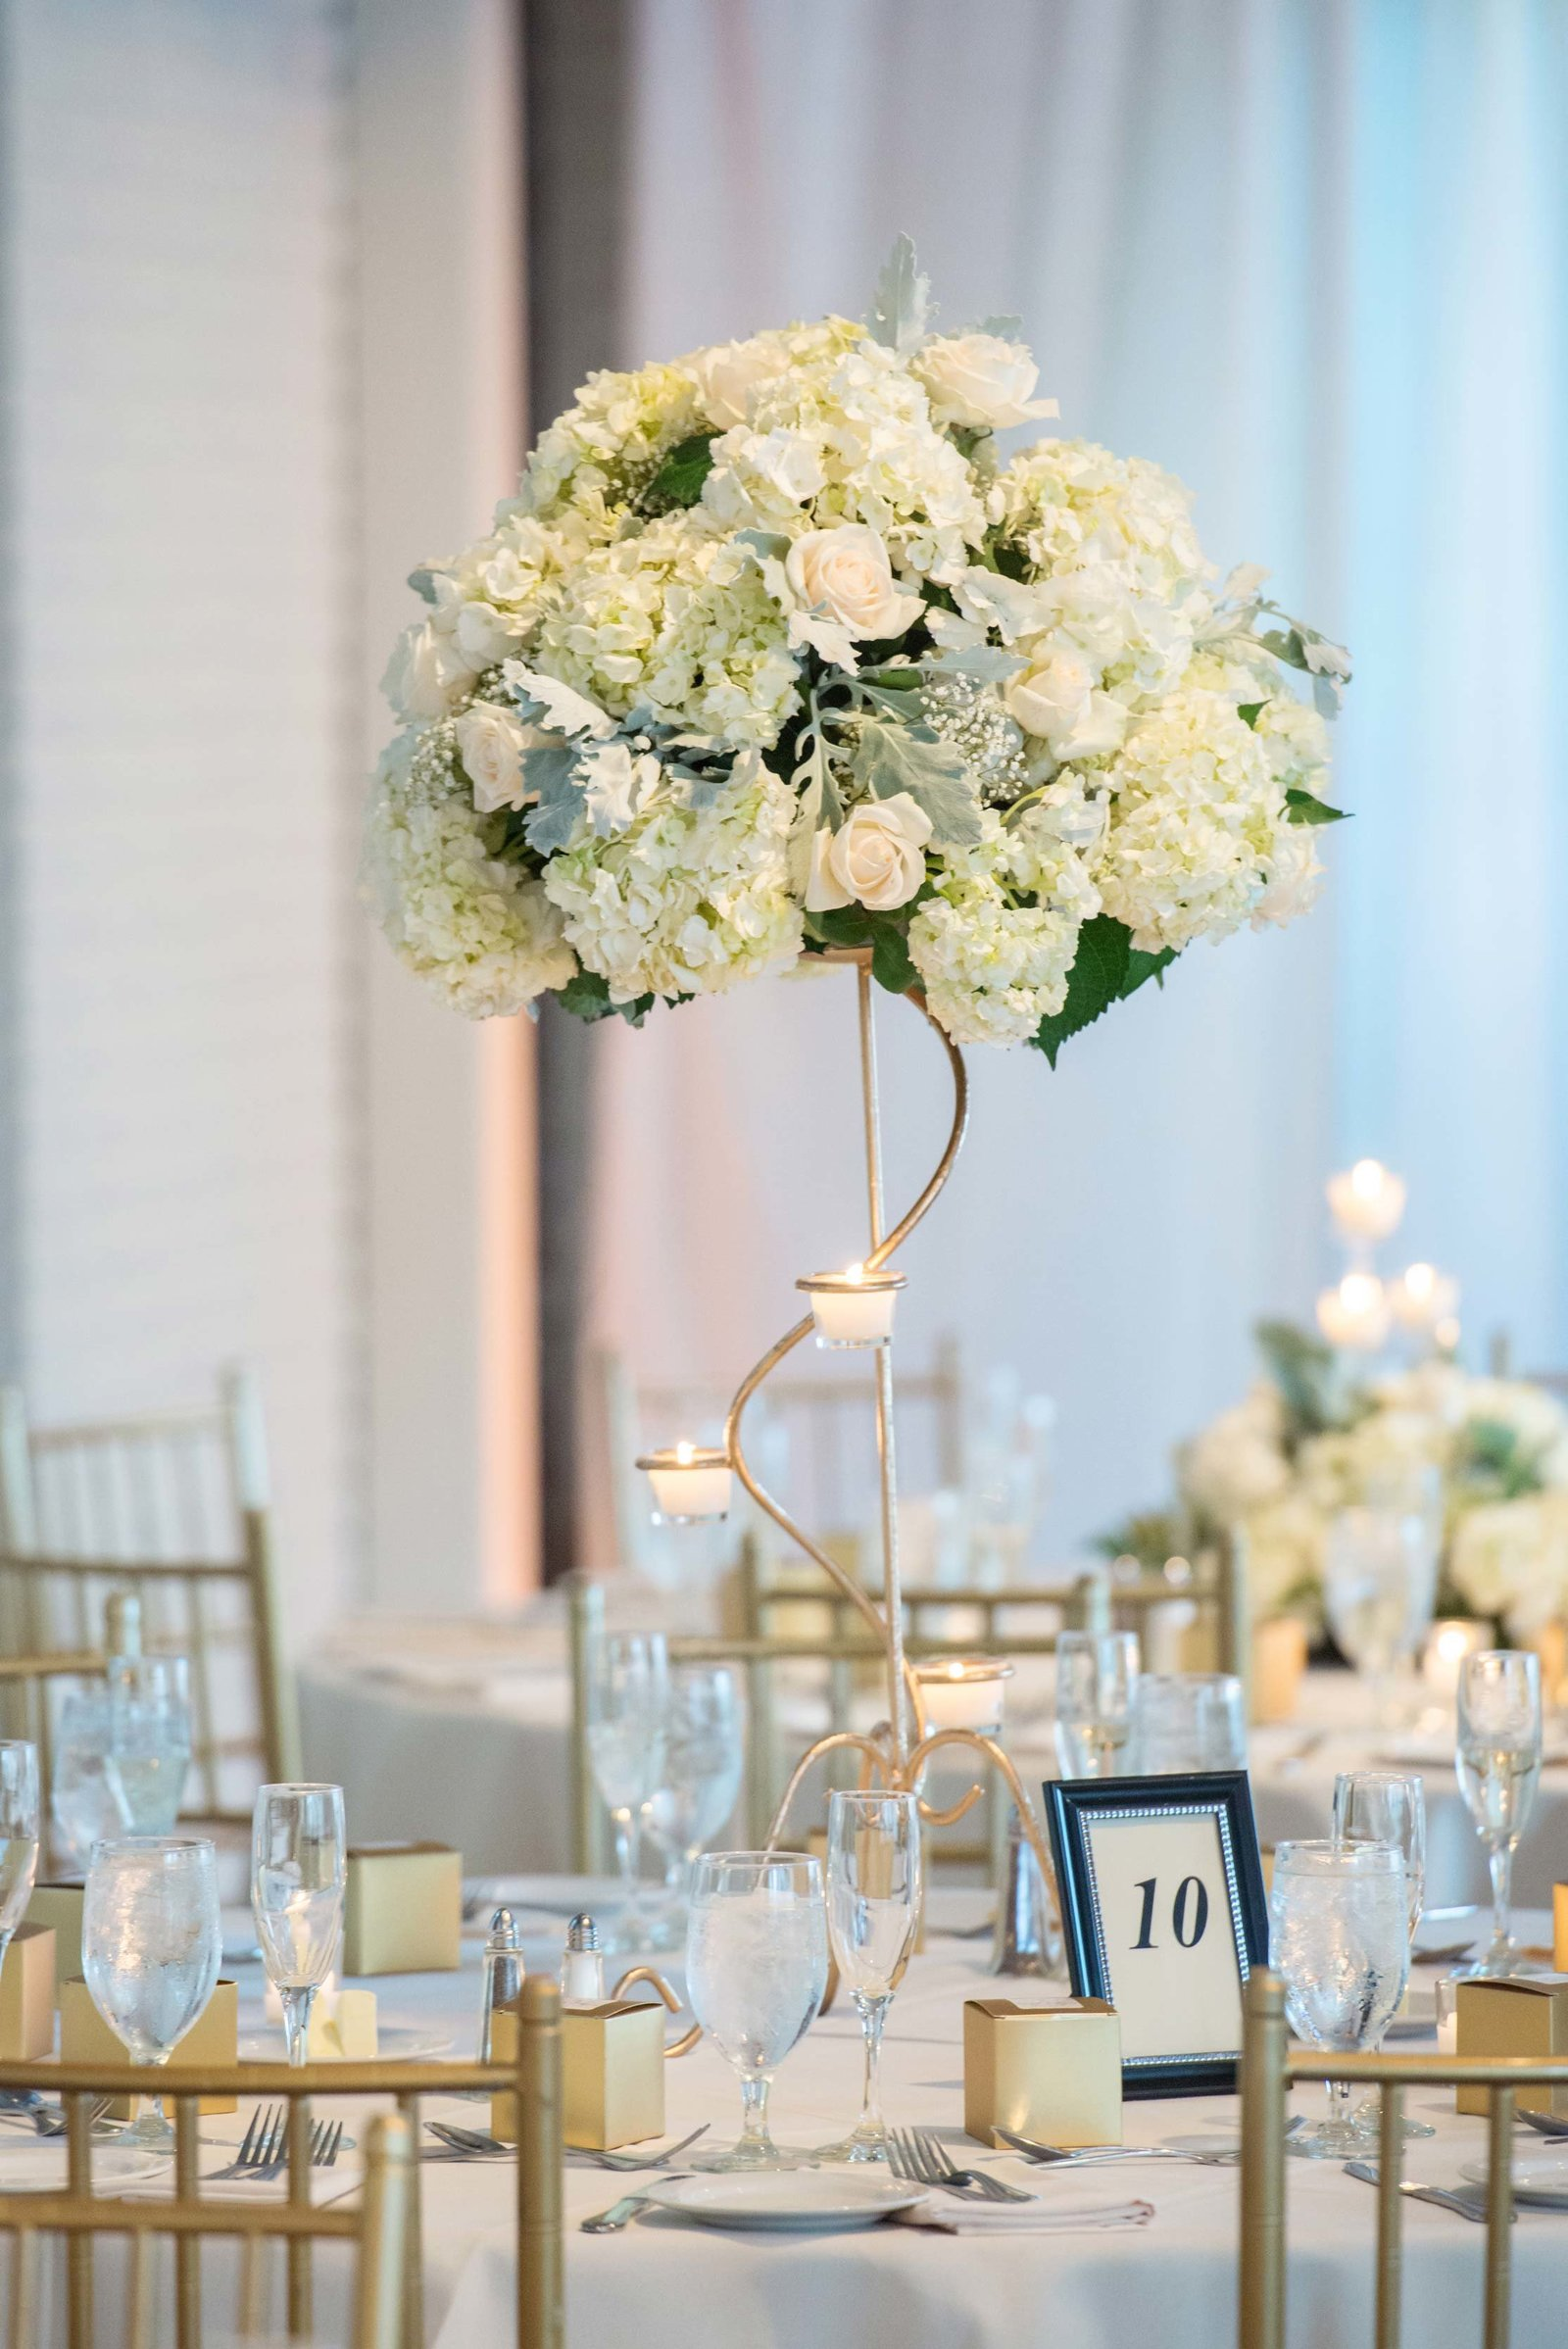 White wedding centerpiece at Coindre Hall